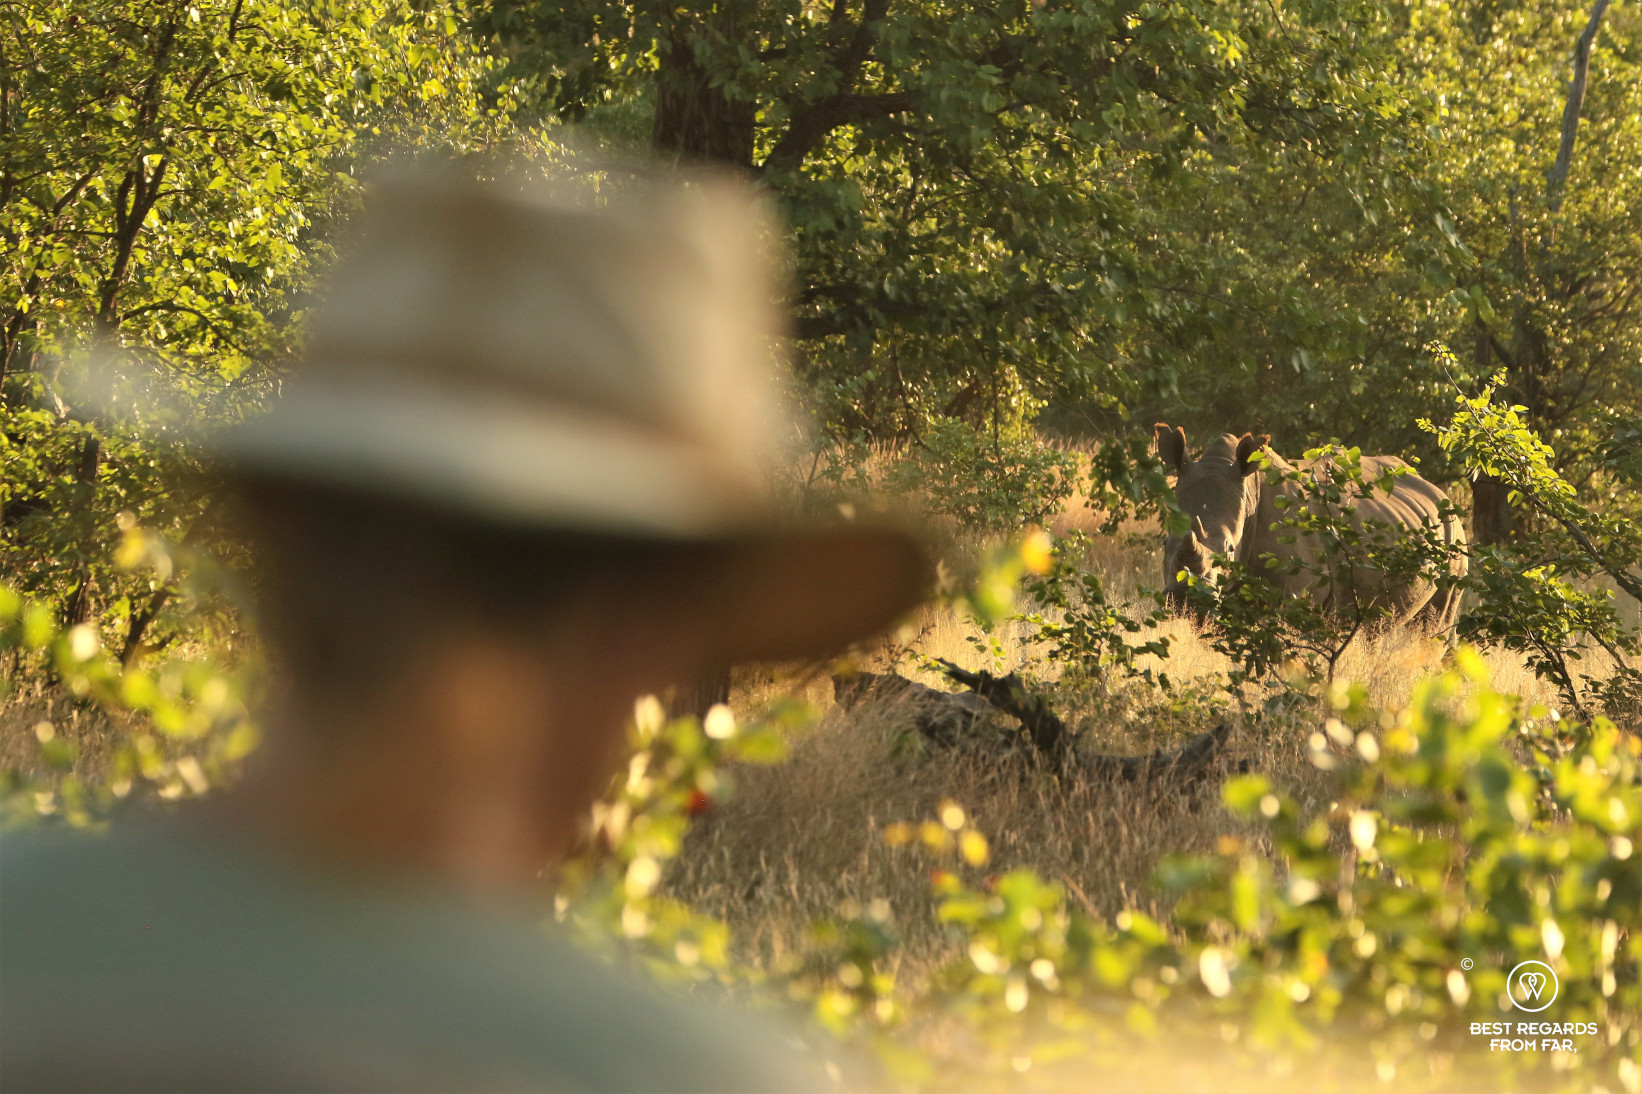 Safari-goer in the foreground close to a white rhino in the African bush